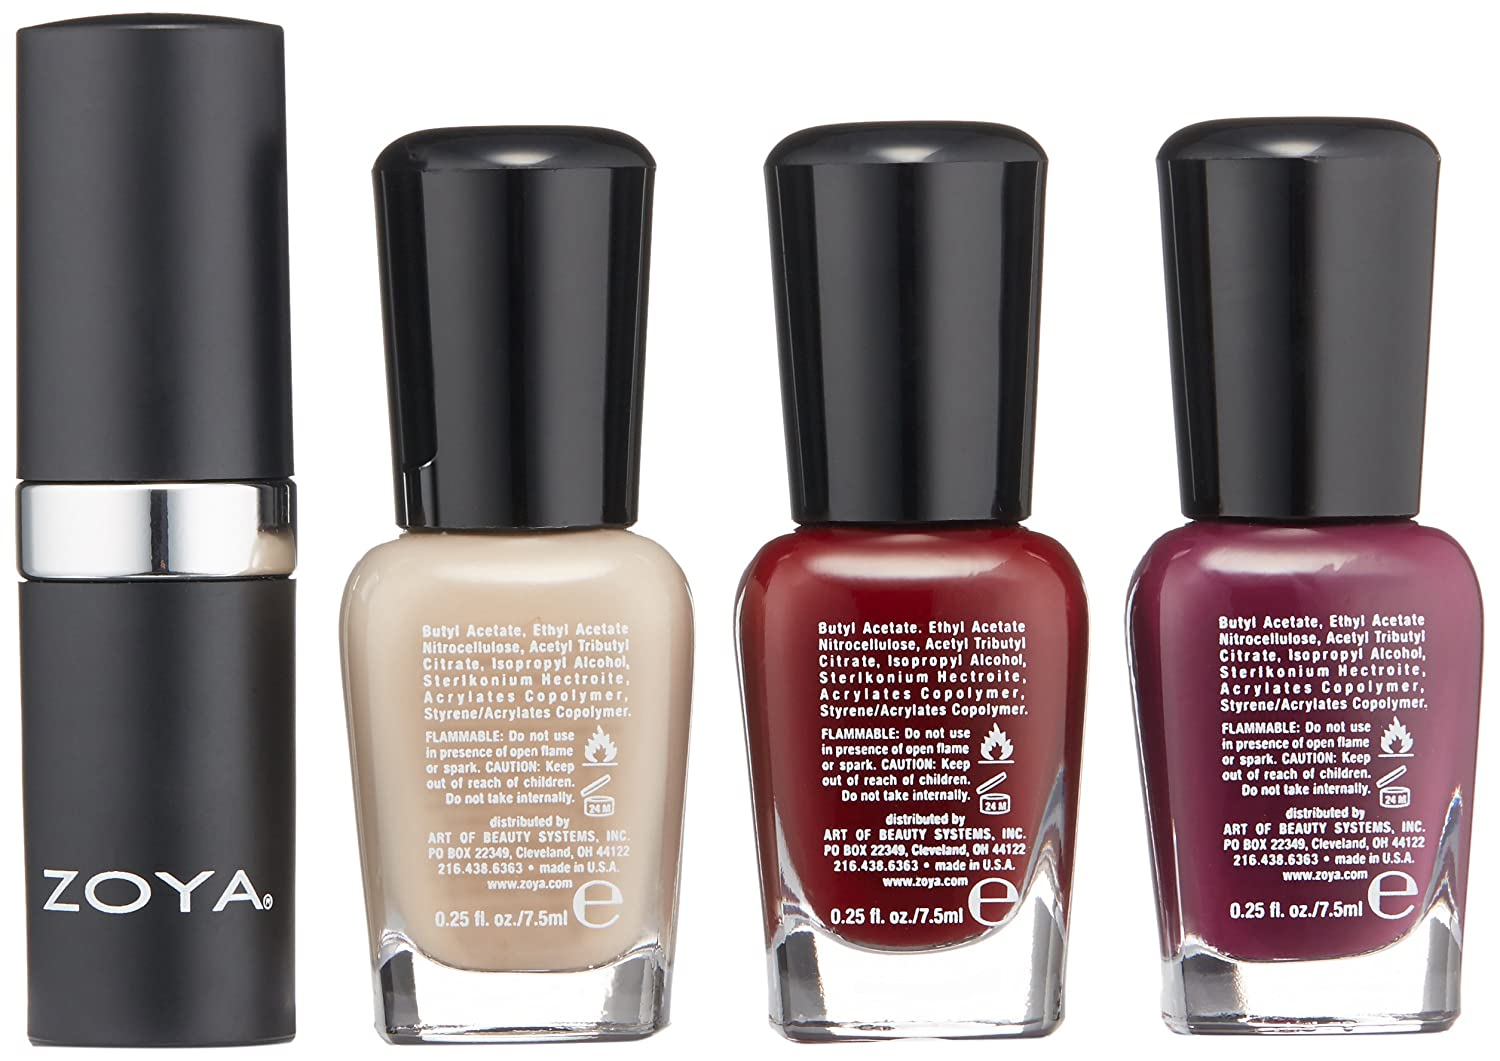 Amazon.com: ZOYA Nail Polish, Rosy Cheeks Lips & Tips Quad, 1 fl. oz ...